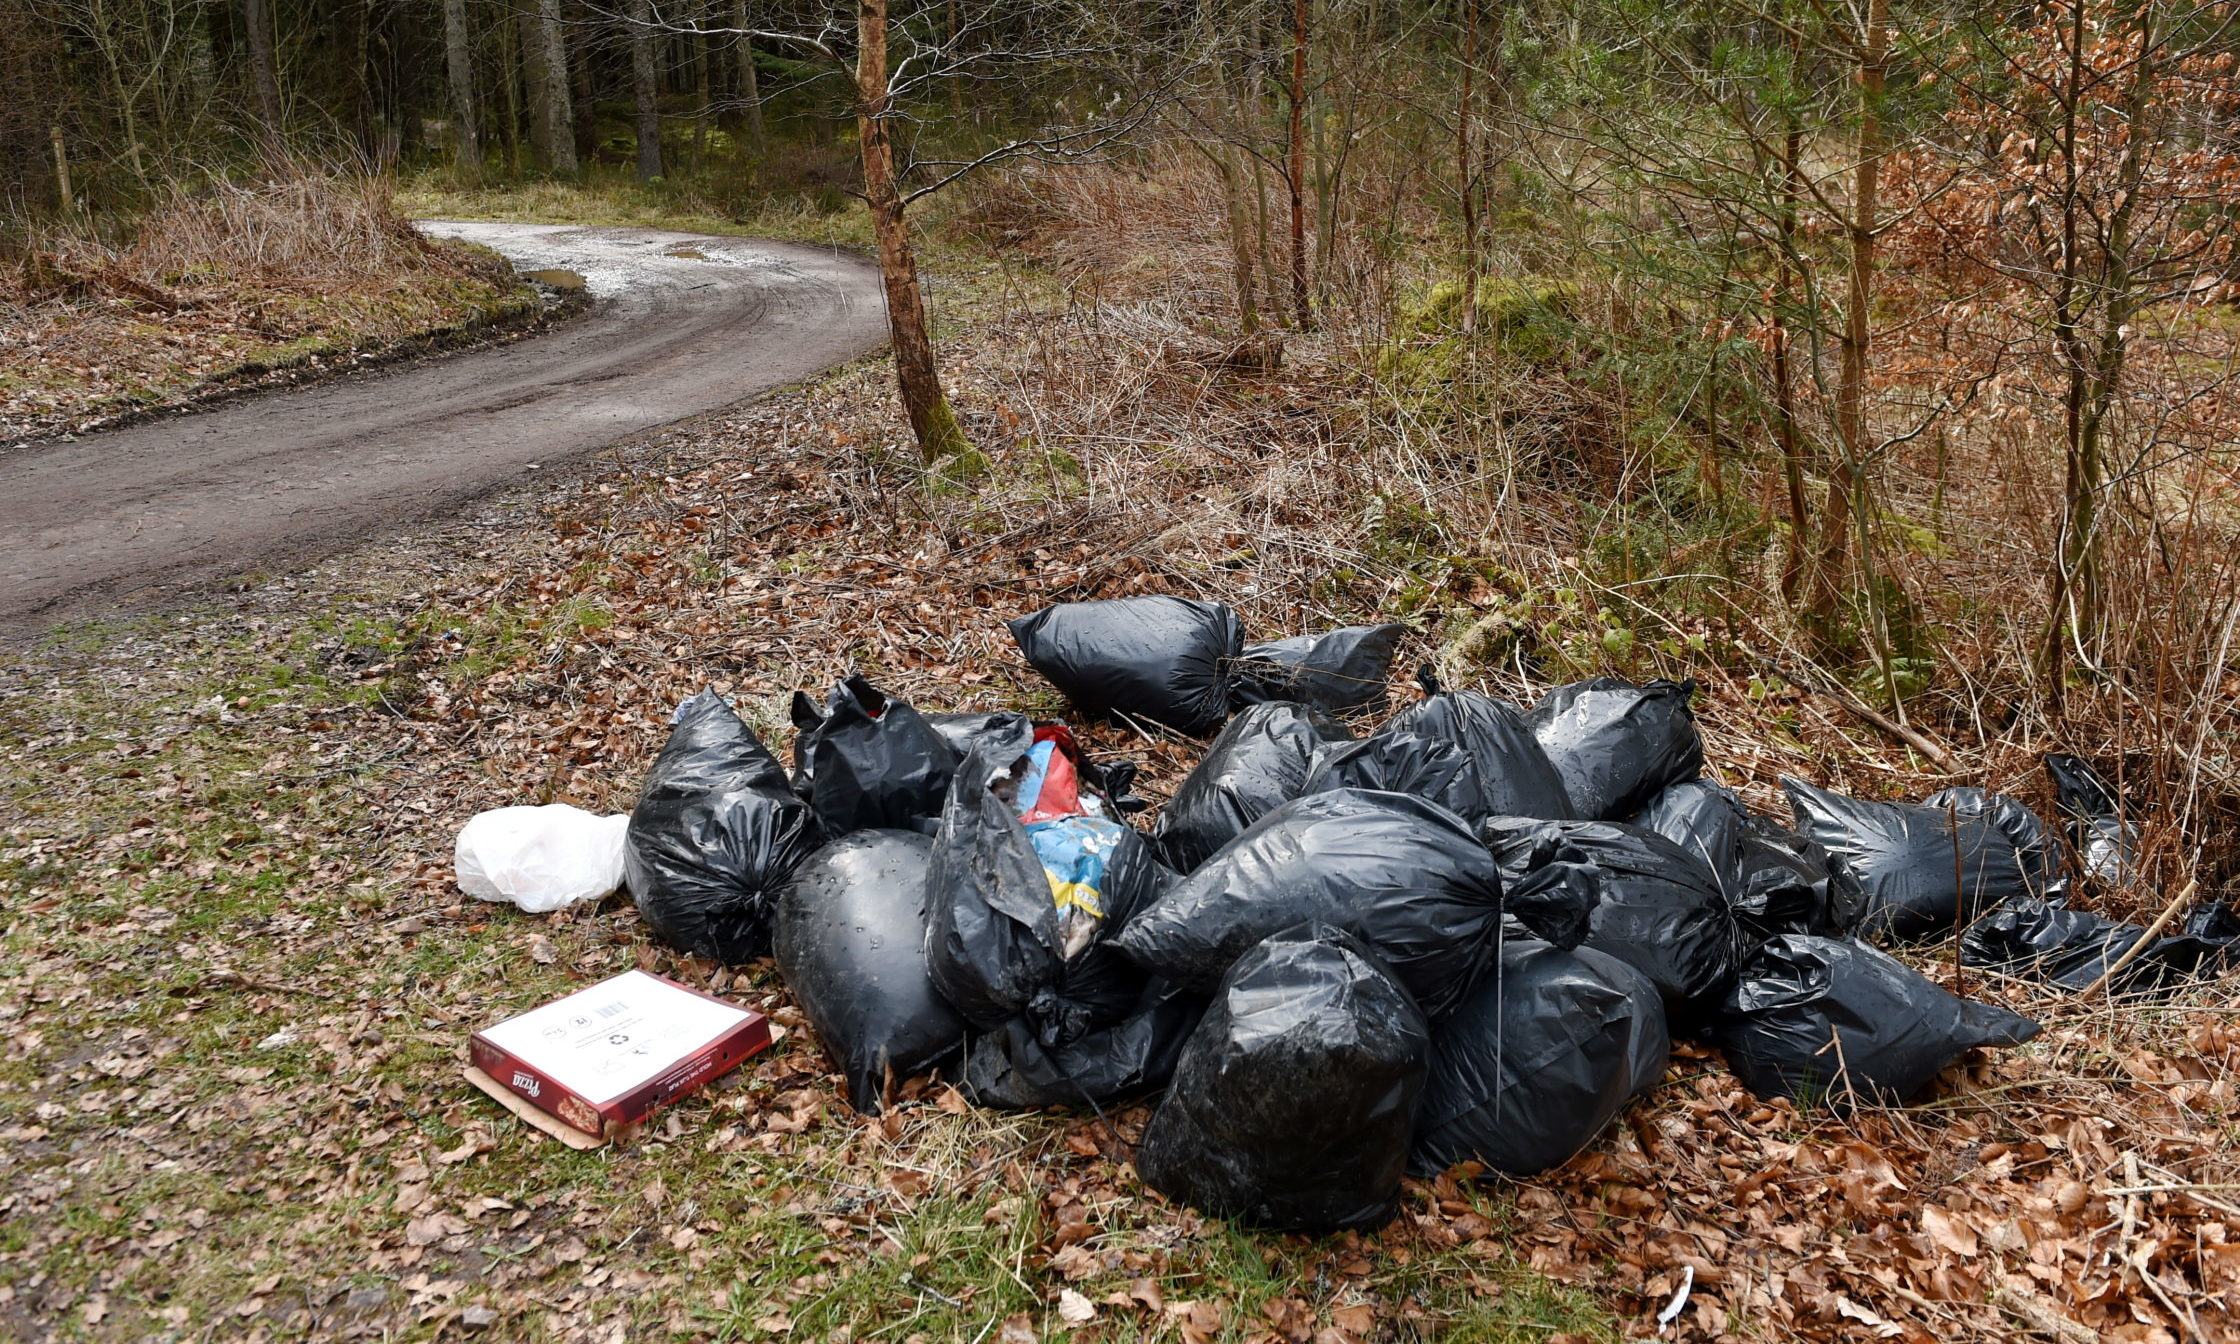 Fly-tipping at Clootie Well car park near Munlochy. Picture by Sandy McCook.